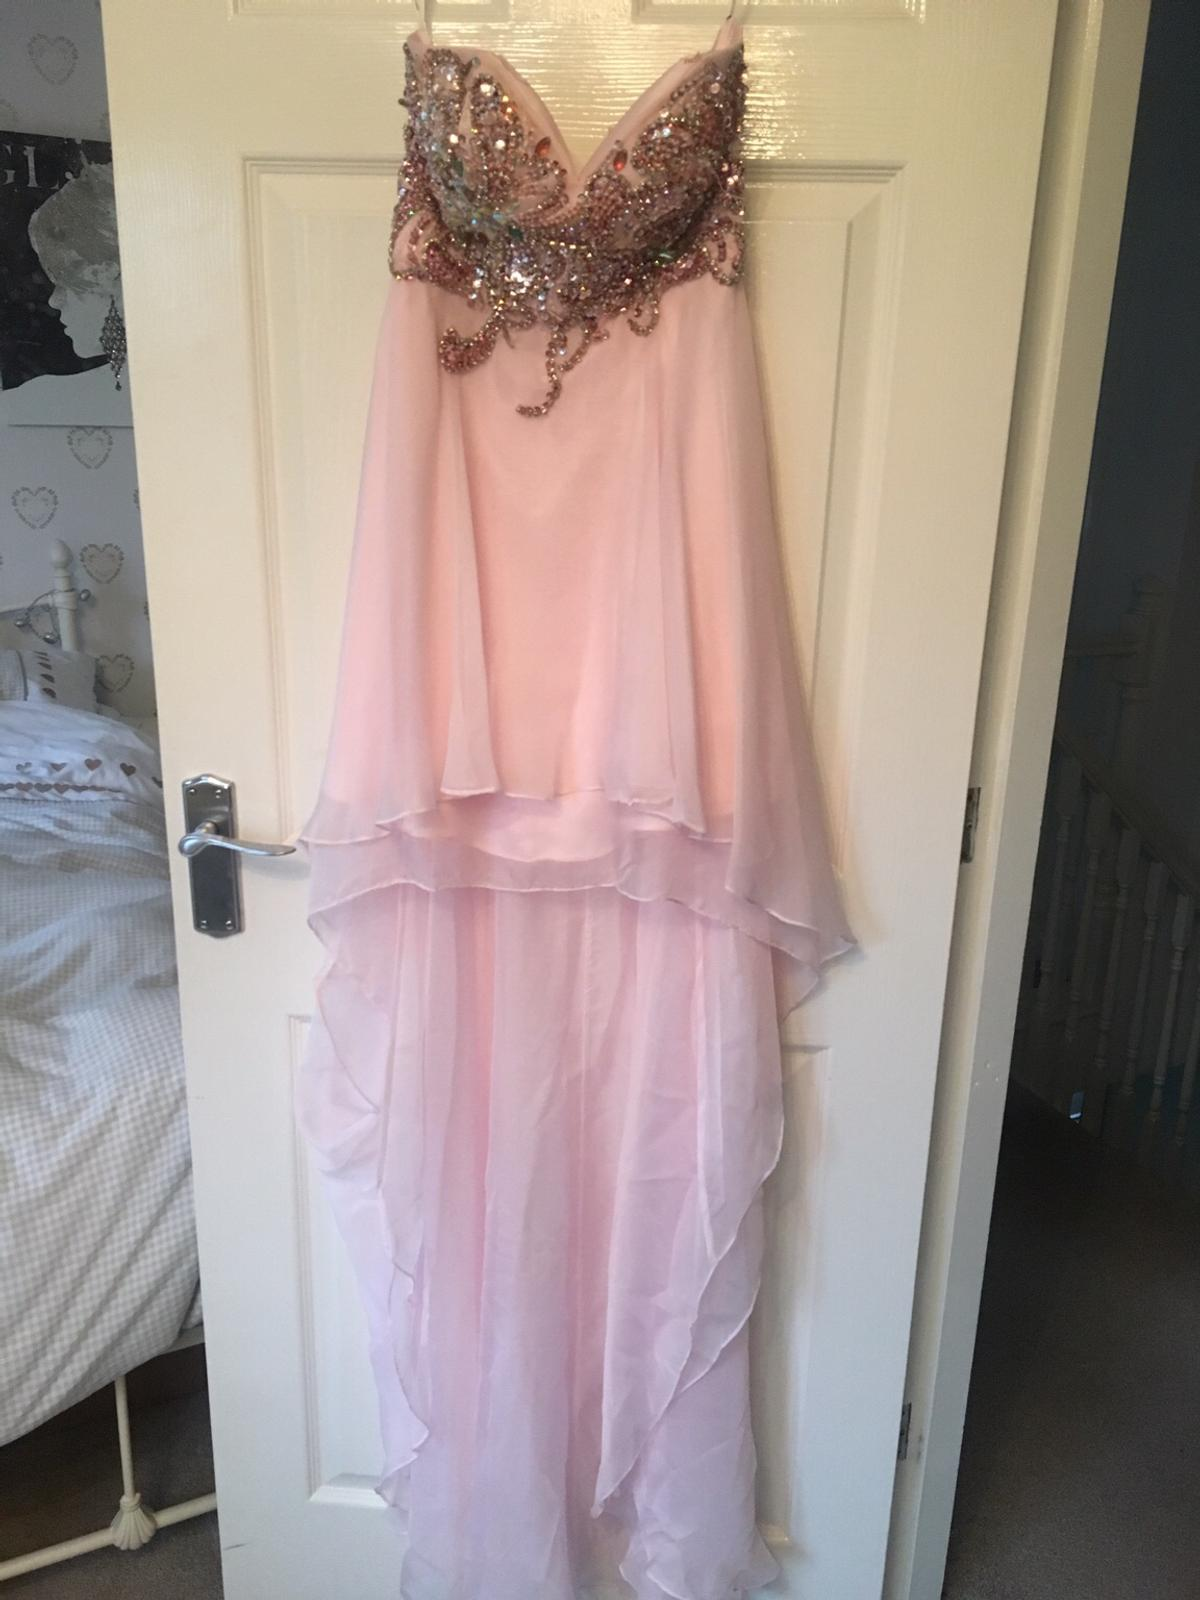 7022e95e42 Pale Pink Prom Ball Dress In Ws14 Lichfield For 30 00